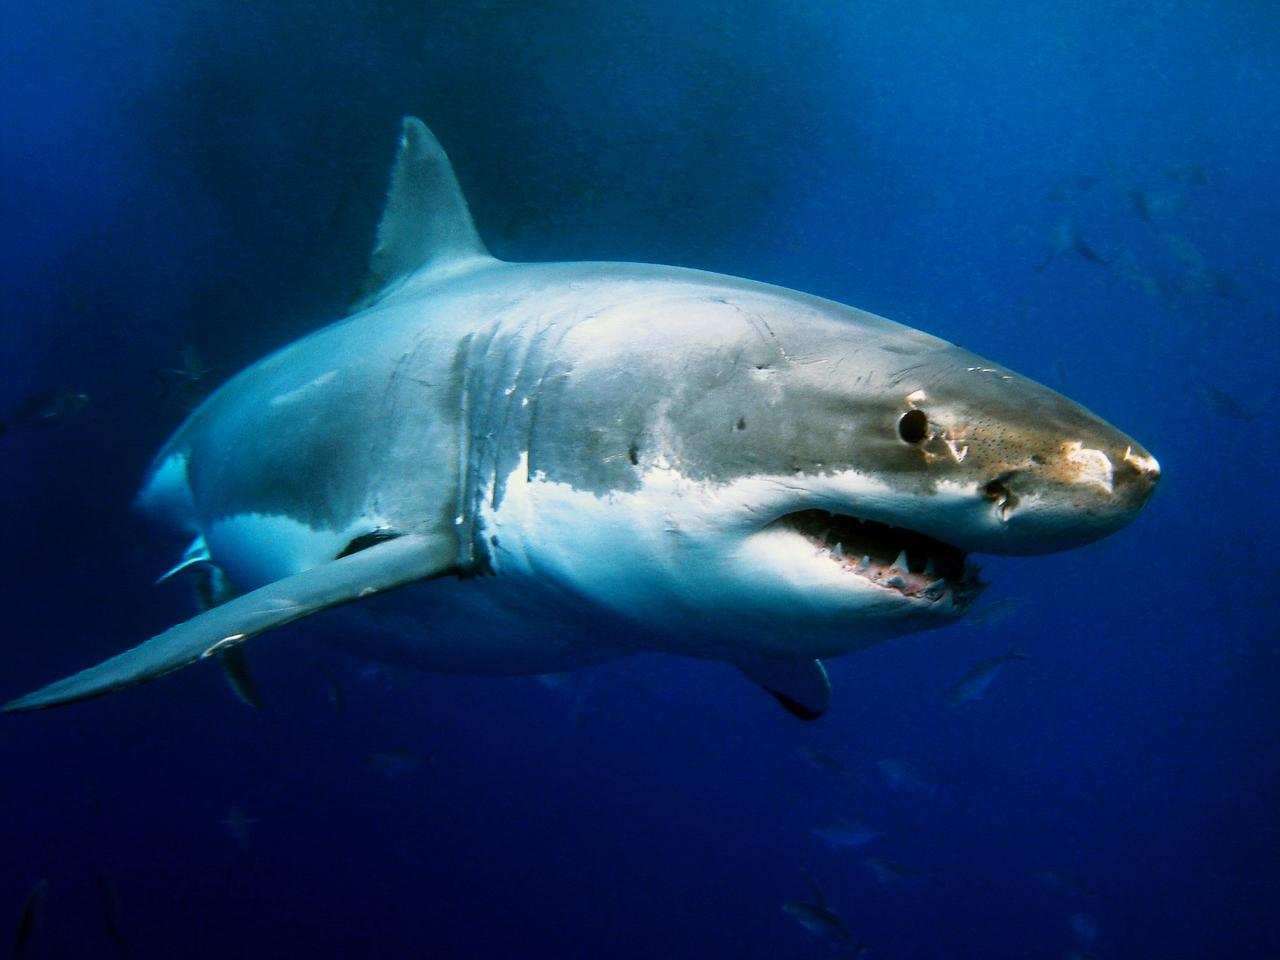 The genome of the great white shark has been sequenced